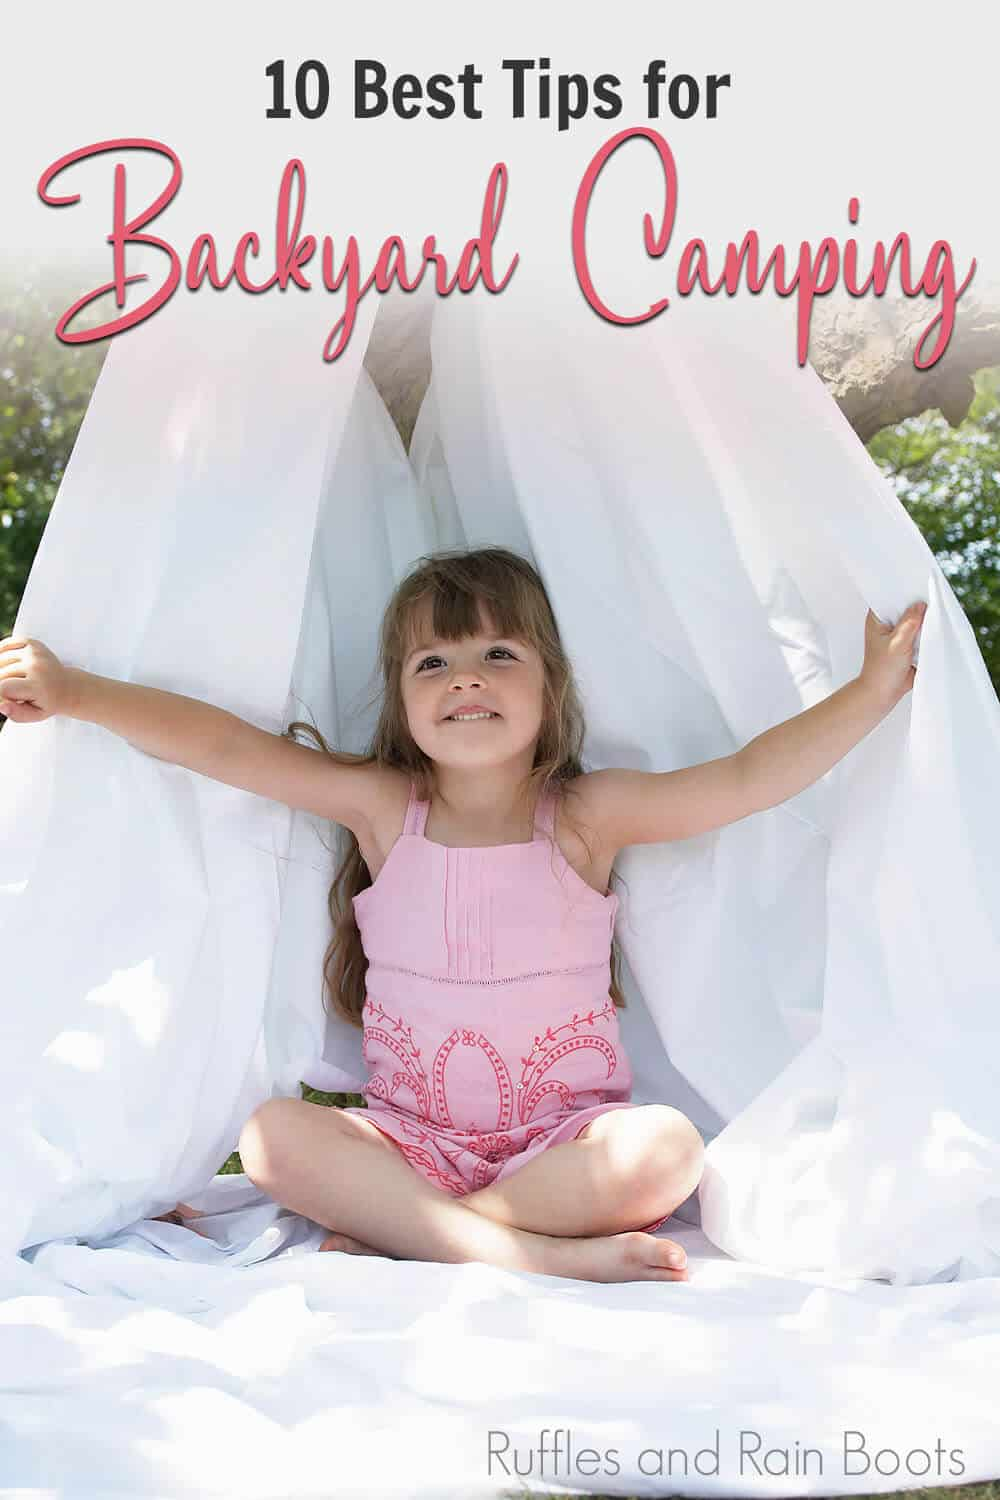 back yard camping hacks with text which reads 10 best tips for backyard camping